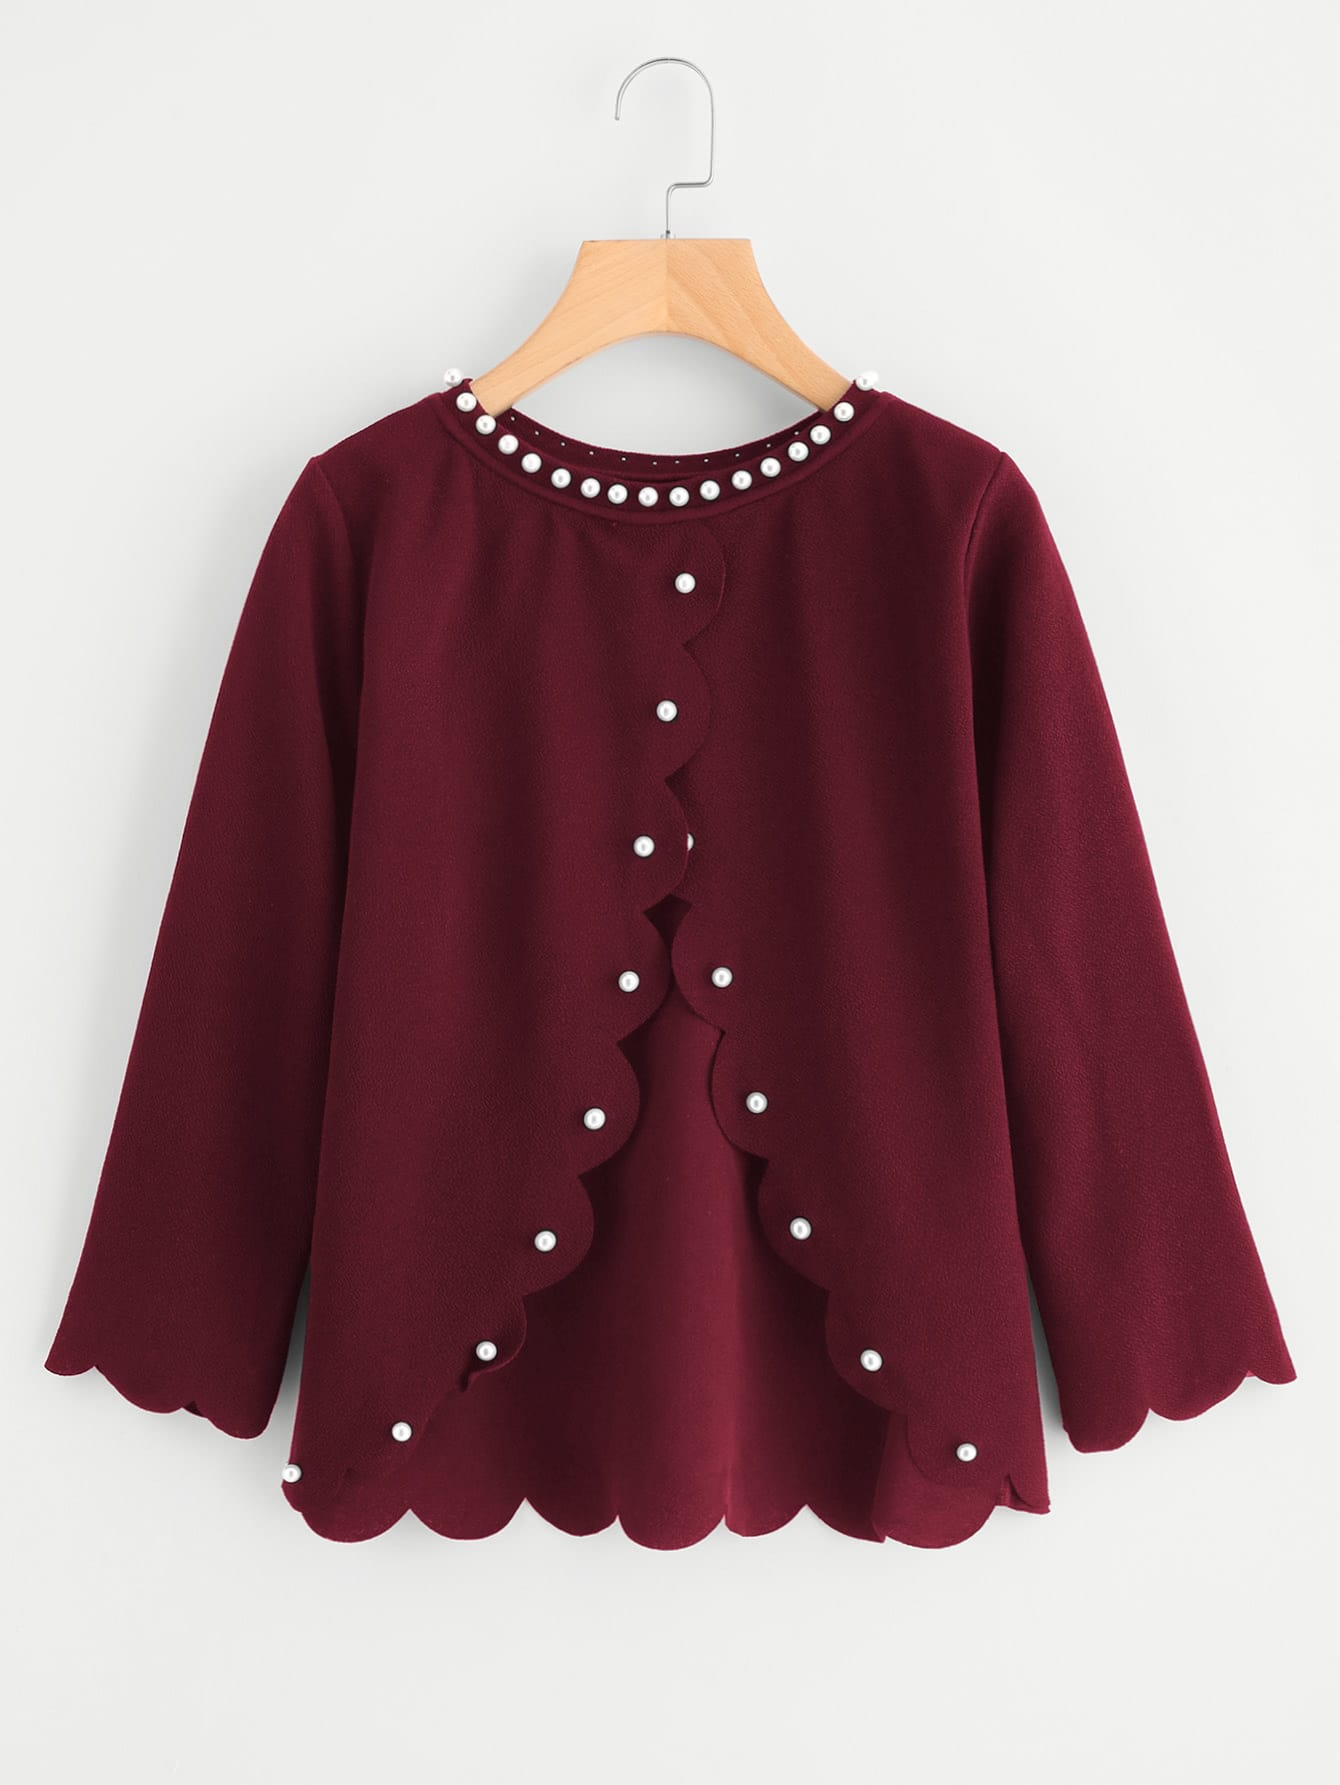 Pearl Beading Overlap Back Scalloped Top pearl beading scalloped textured top